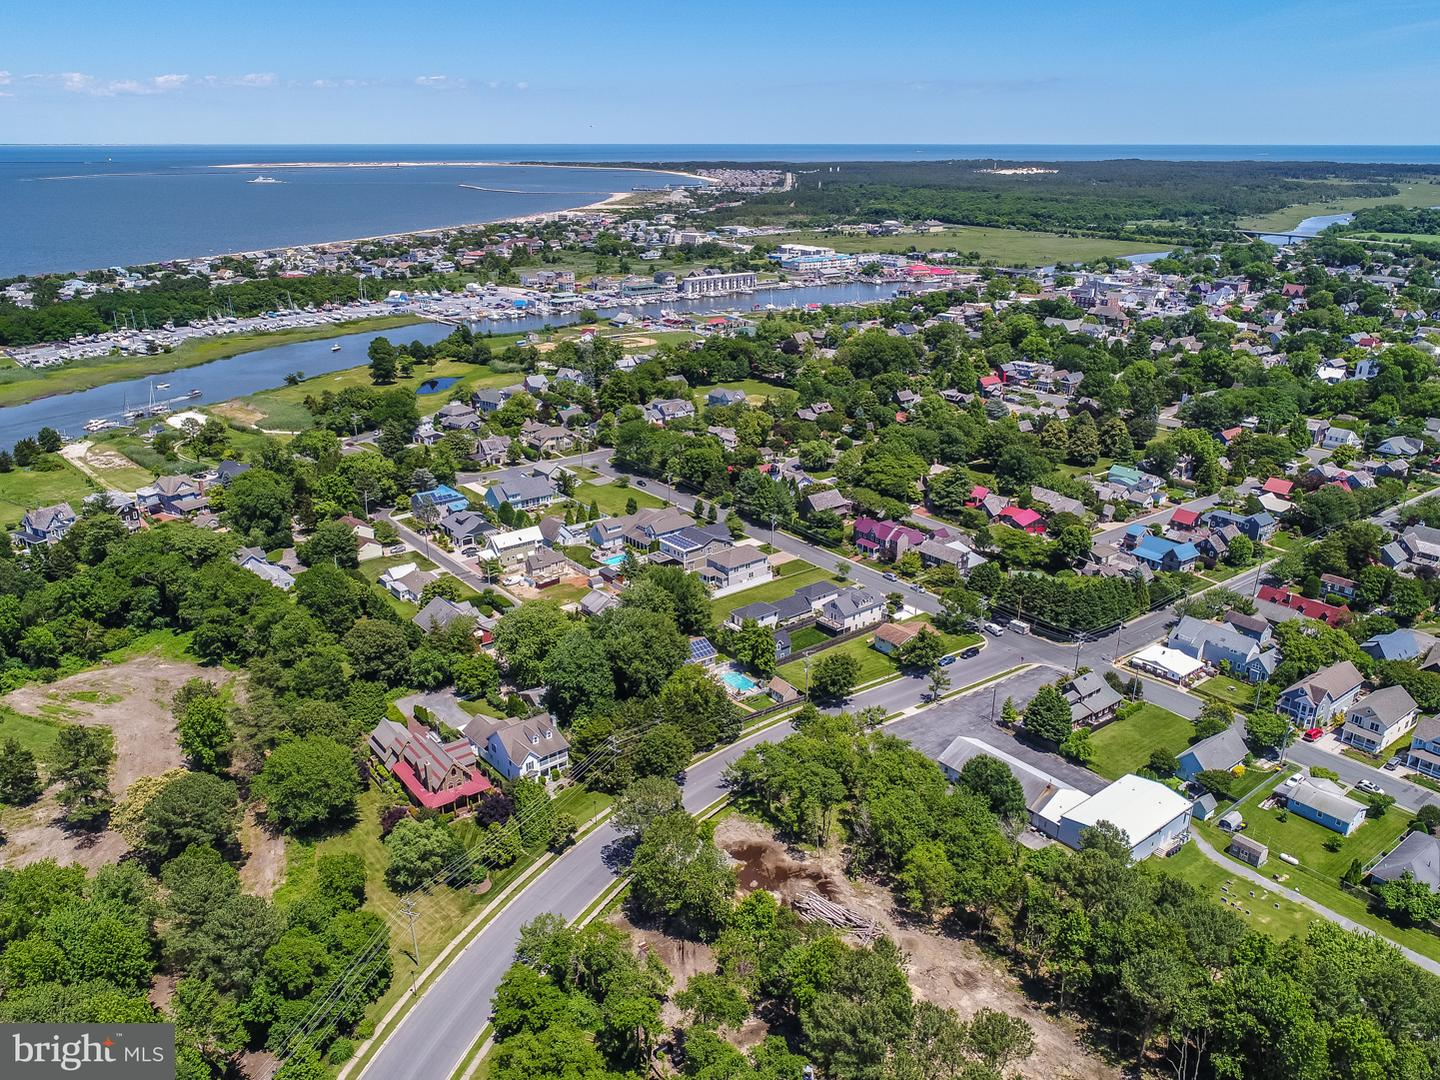 1002047892-300471115585-2018-08-04-07-32-08 Lot 20 Virden Way | Lewes, DE Real Estate For Sale | MLS# 1002047892  - Rehoboth Beach Real Estate - Bryce Lingo and Shaun Tull REALTORS, Rehoboth Beach, Delaware